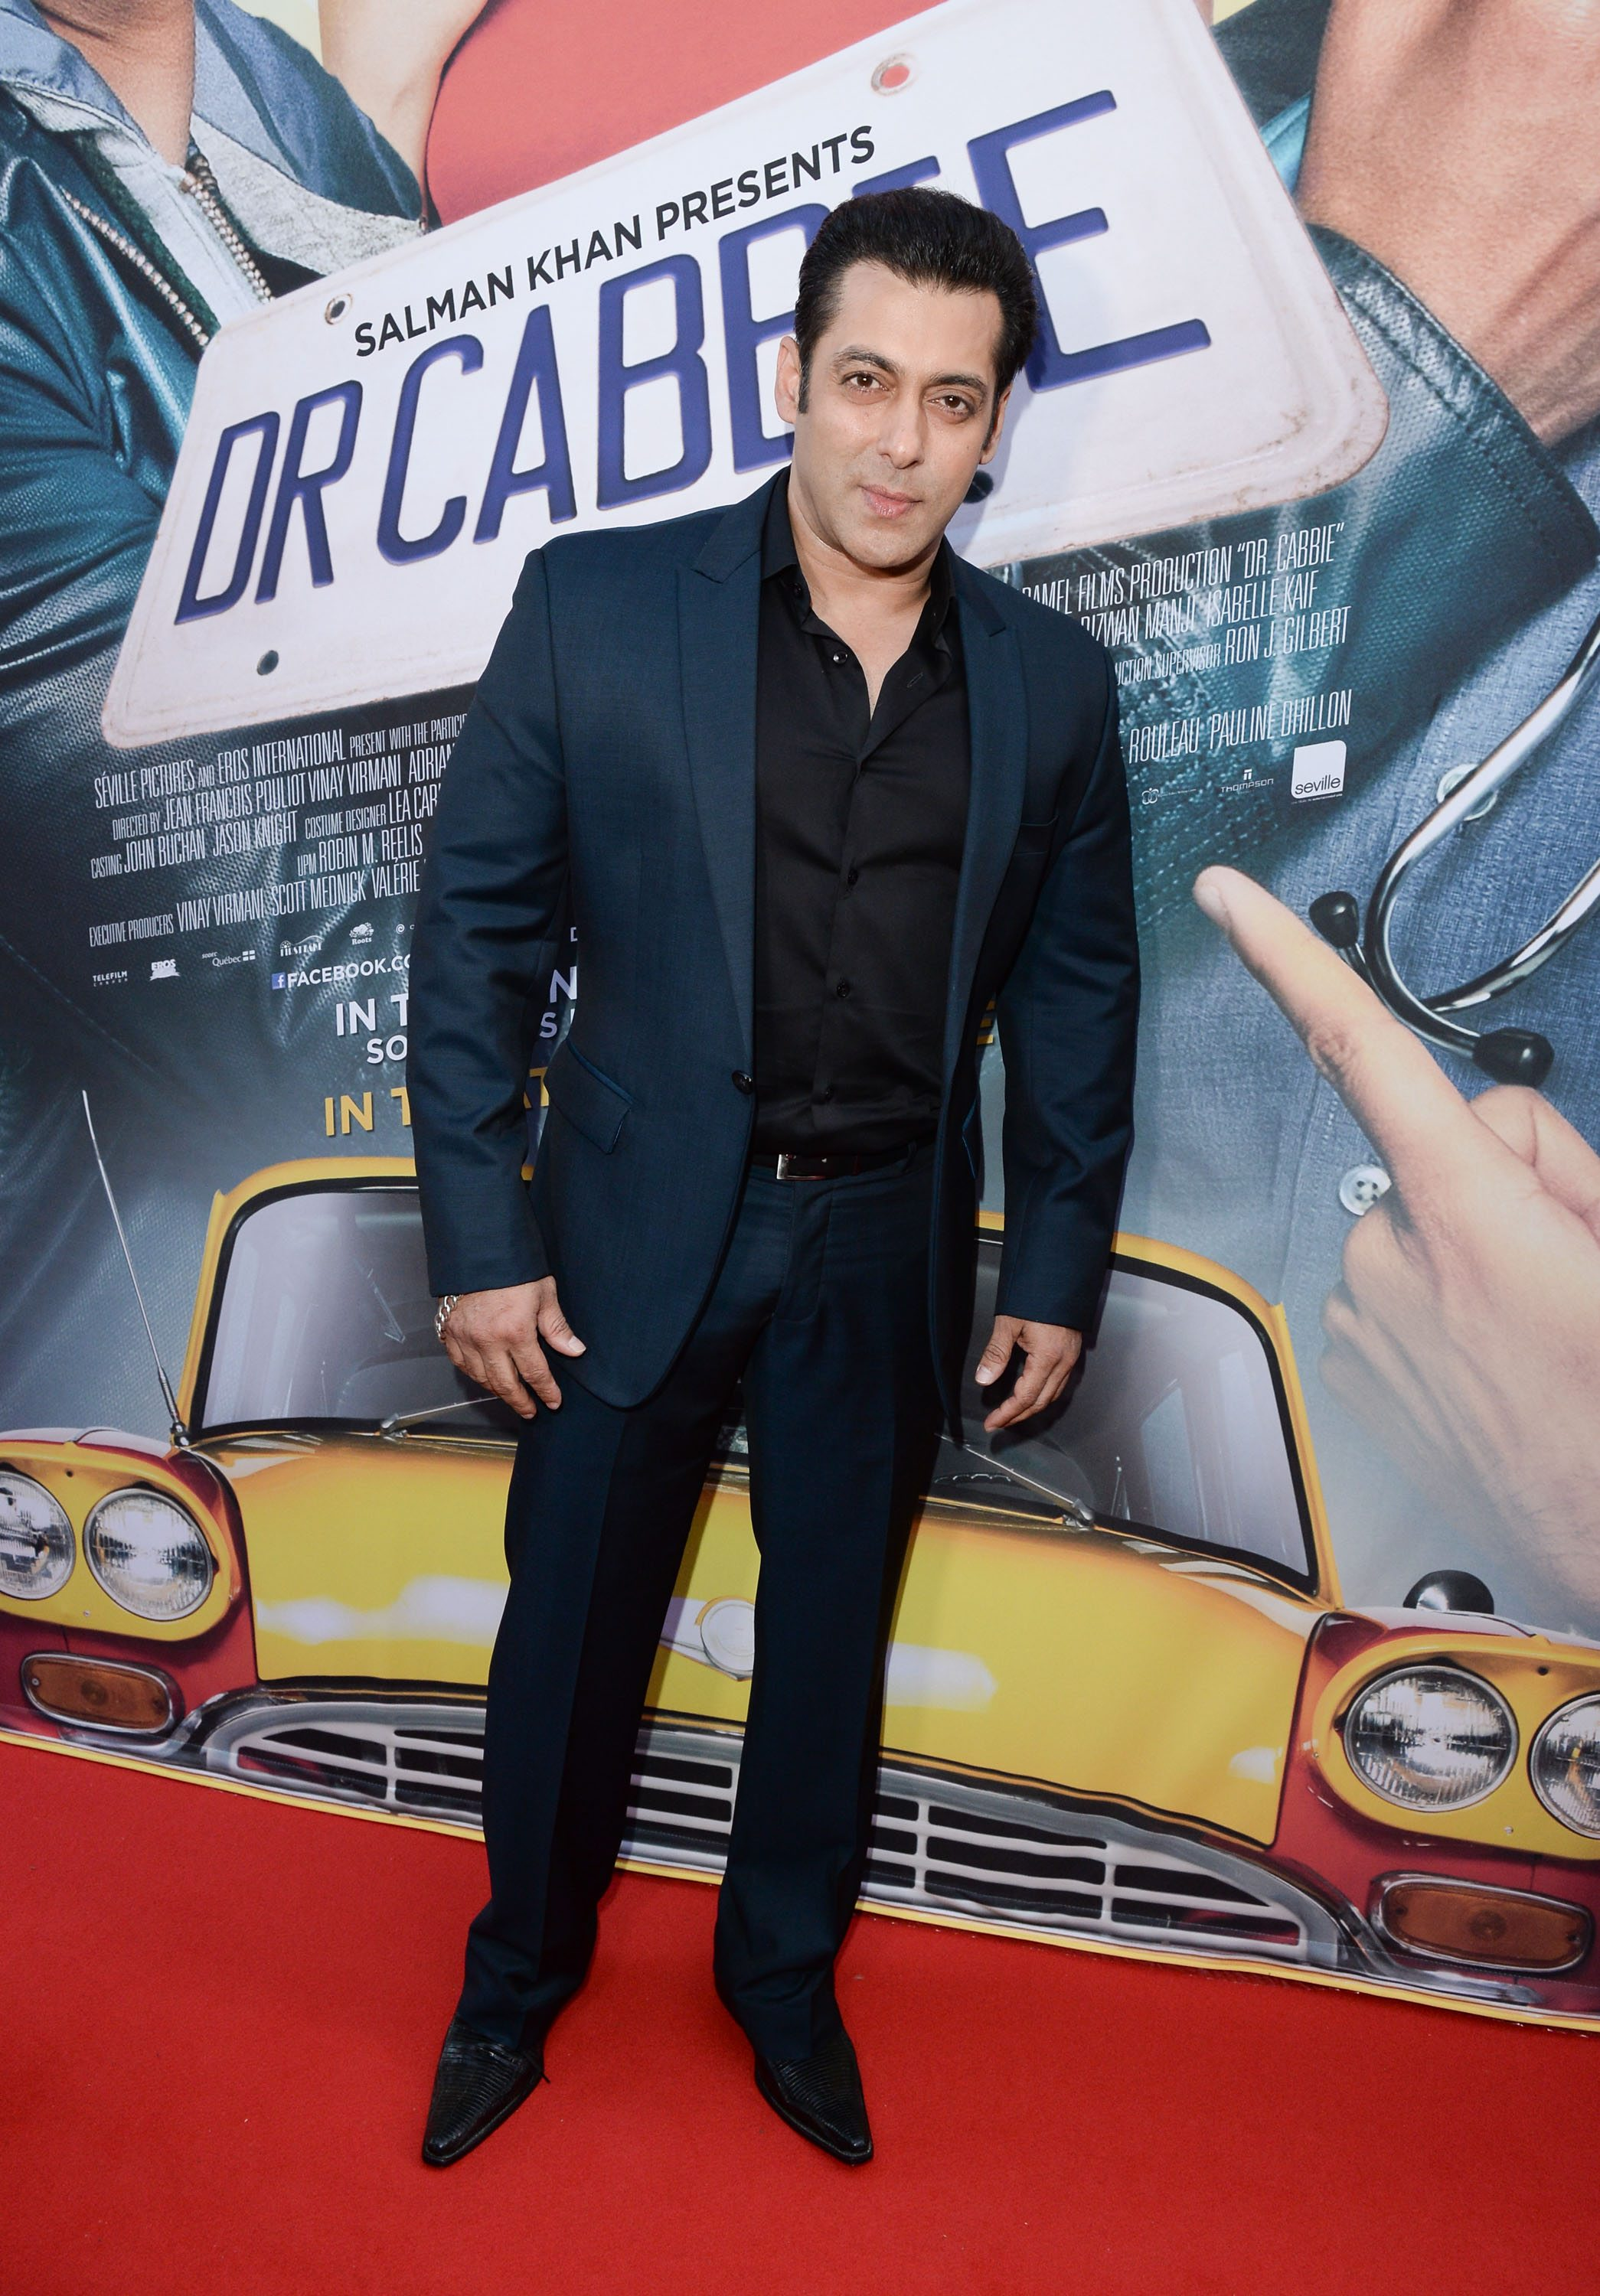 SAlman hit n run